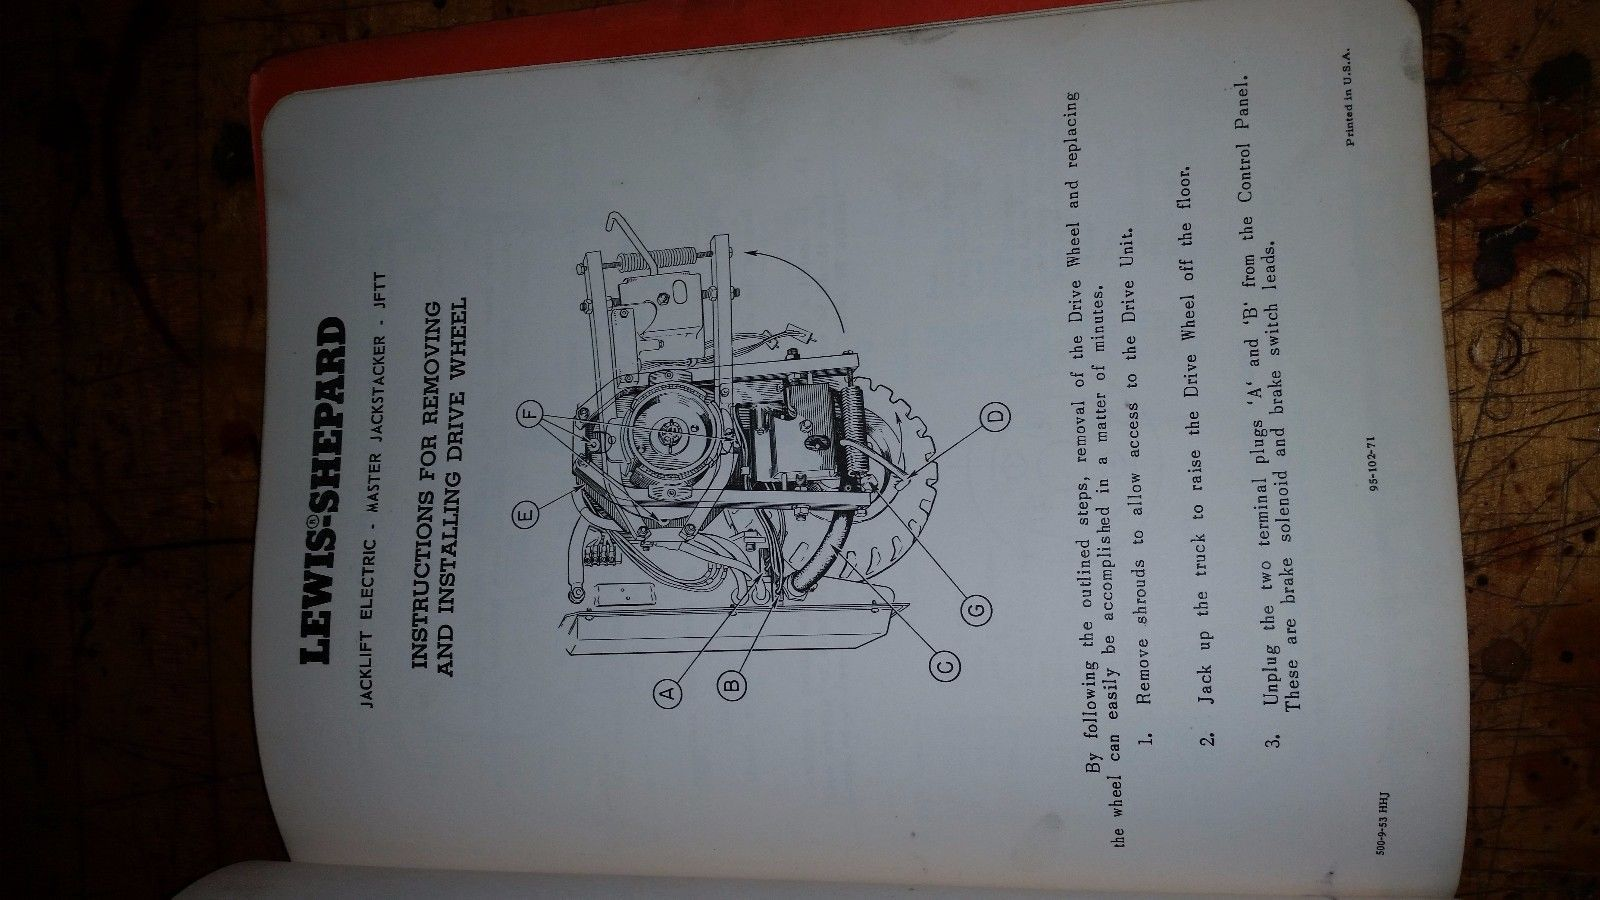 LEWIS SHEPARD JACKLIFT ELECTRIC MASTER JACKSTACKER JFTT MANUAL